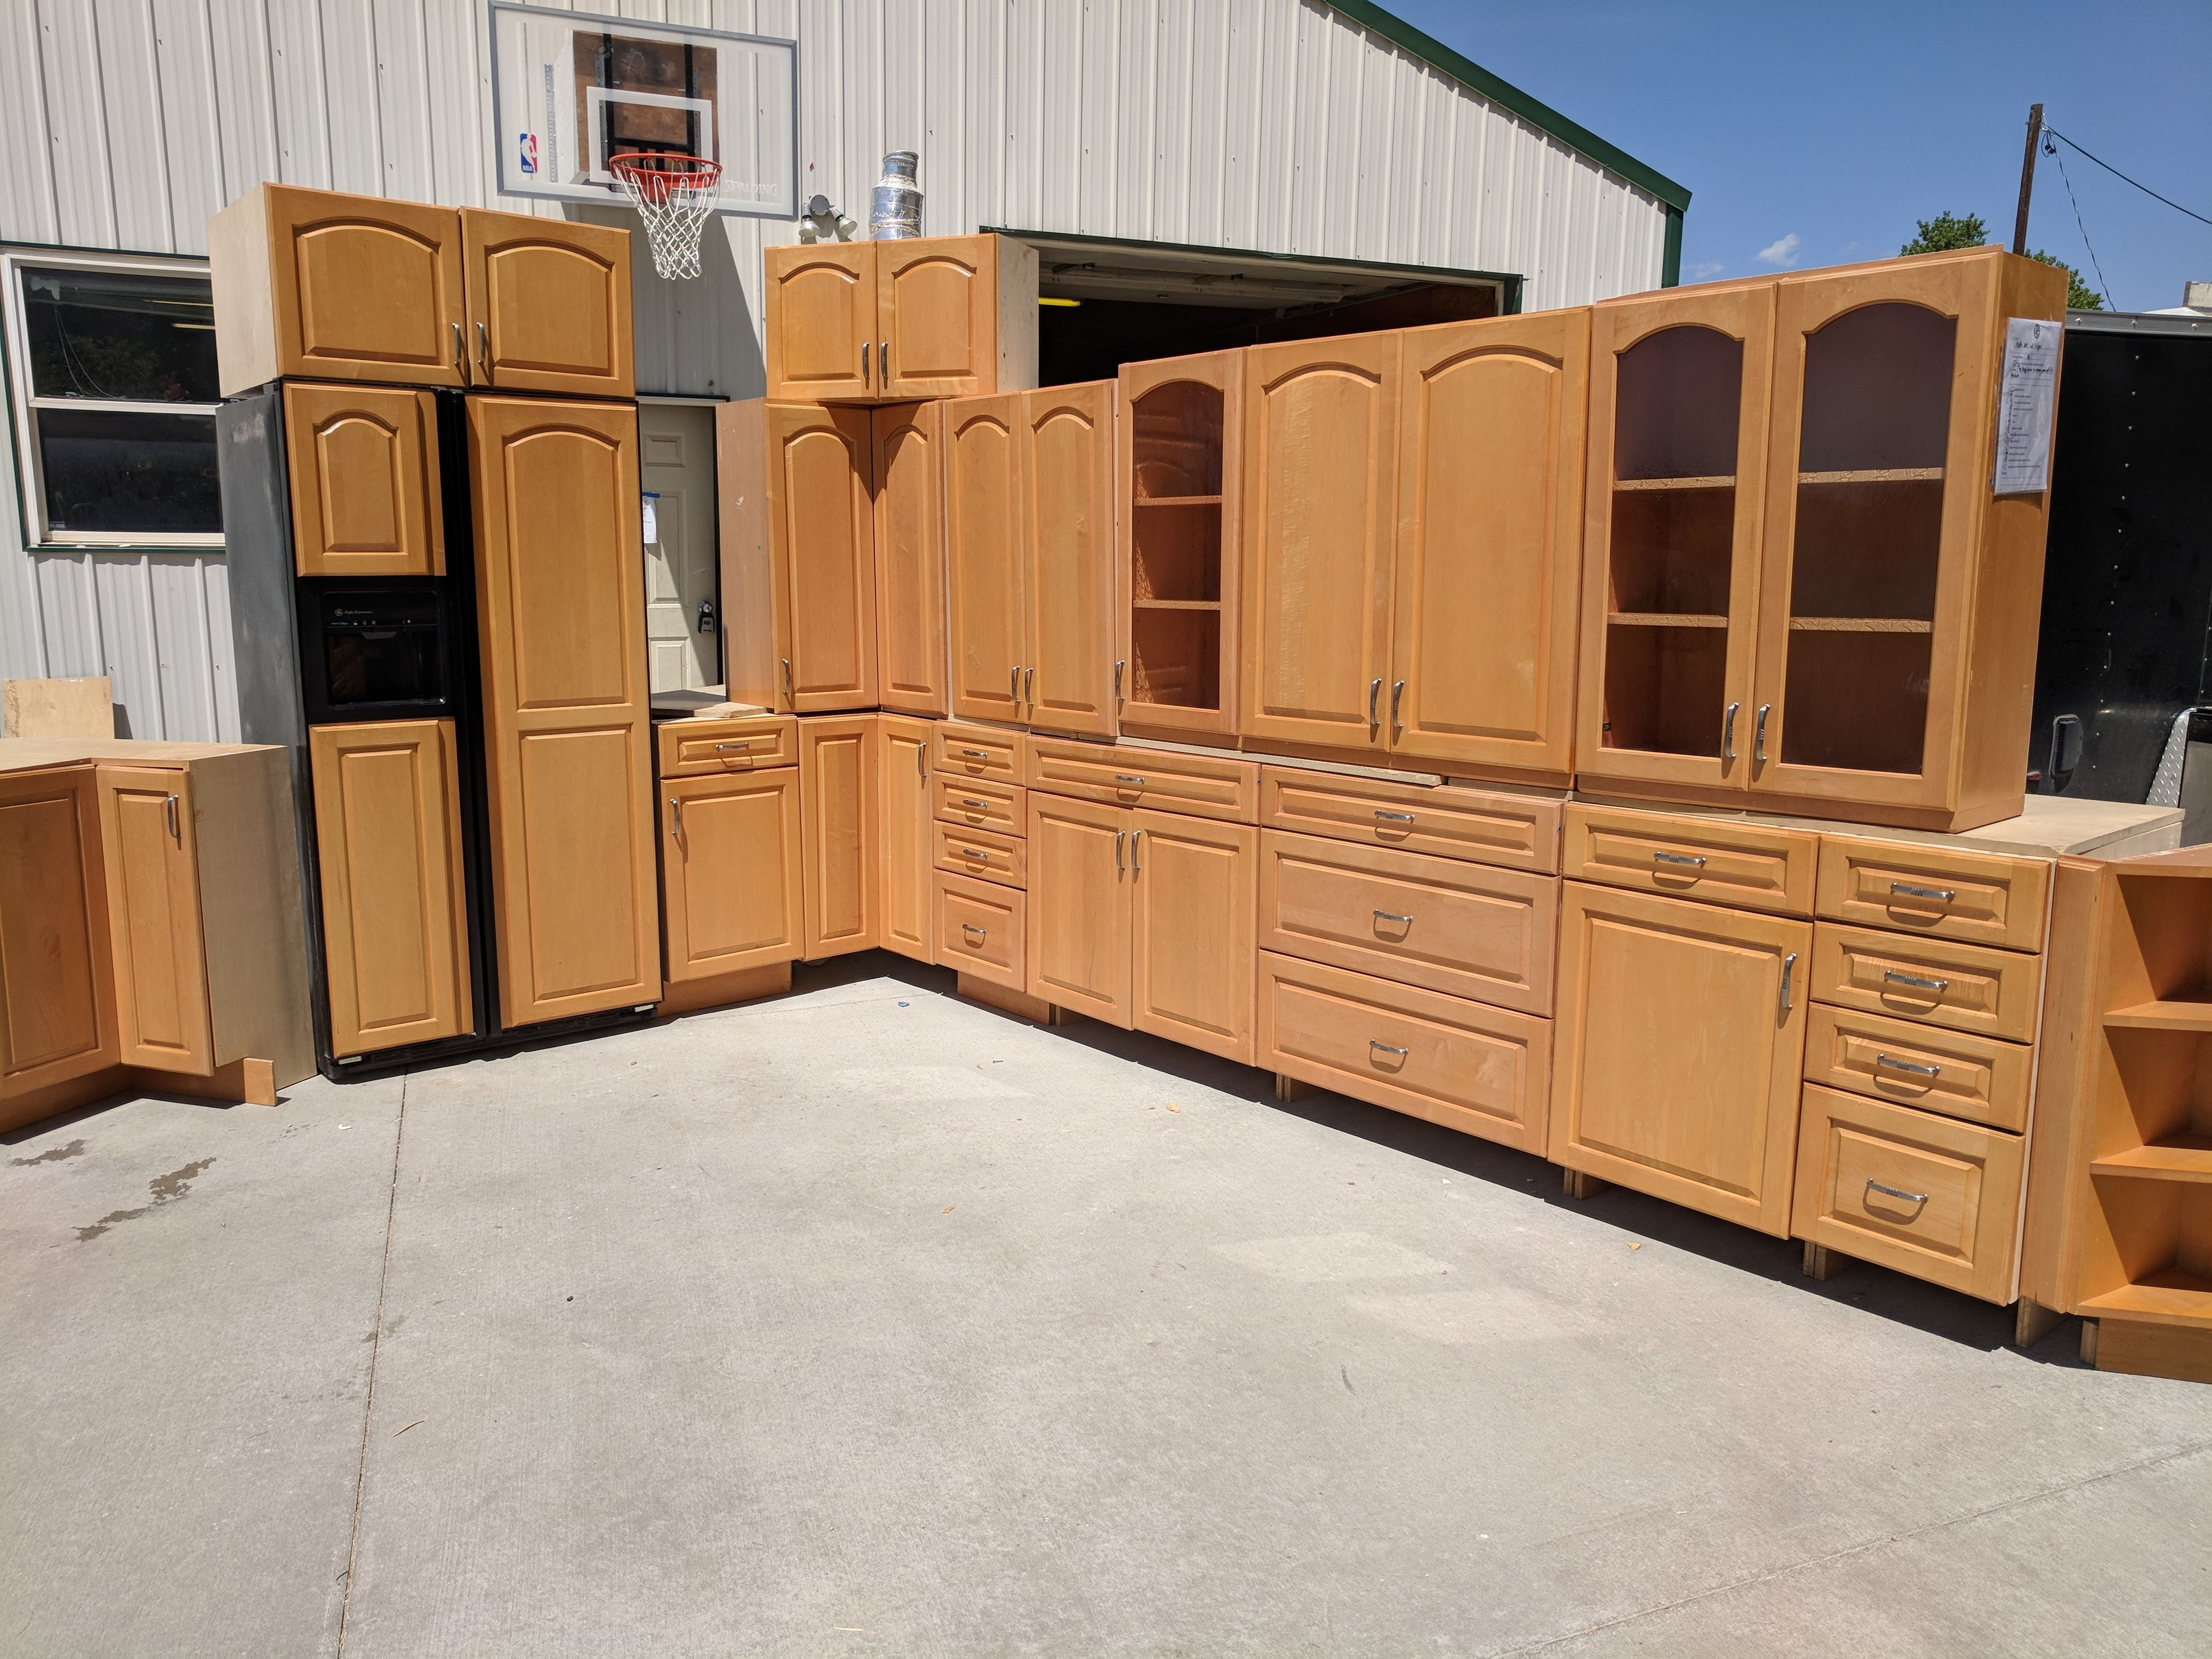 Top rated local repurposed cabinetry in revolutionizing home